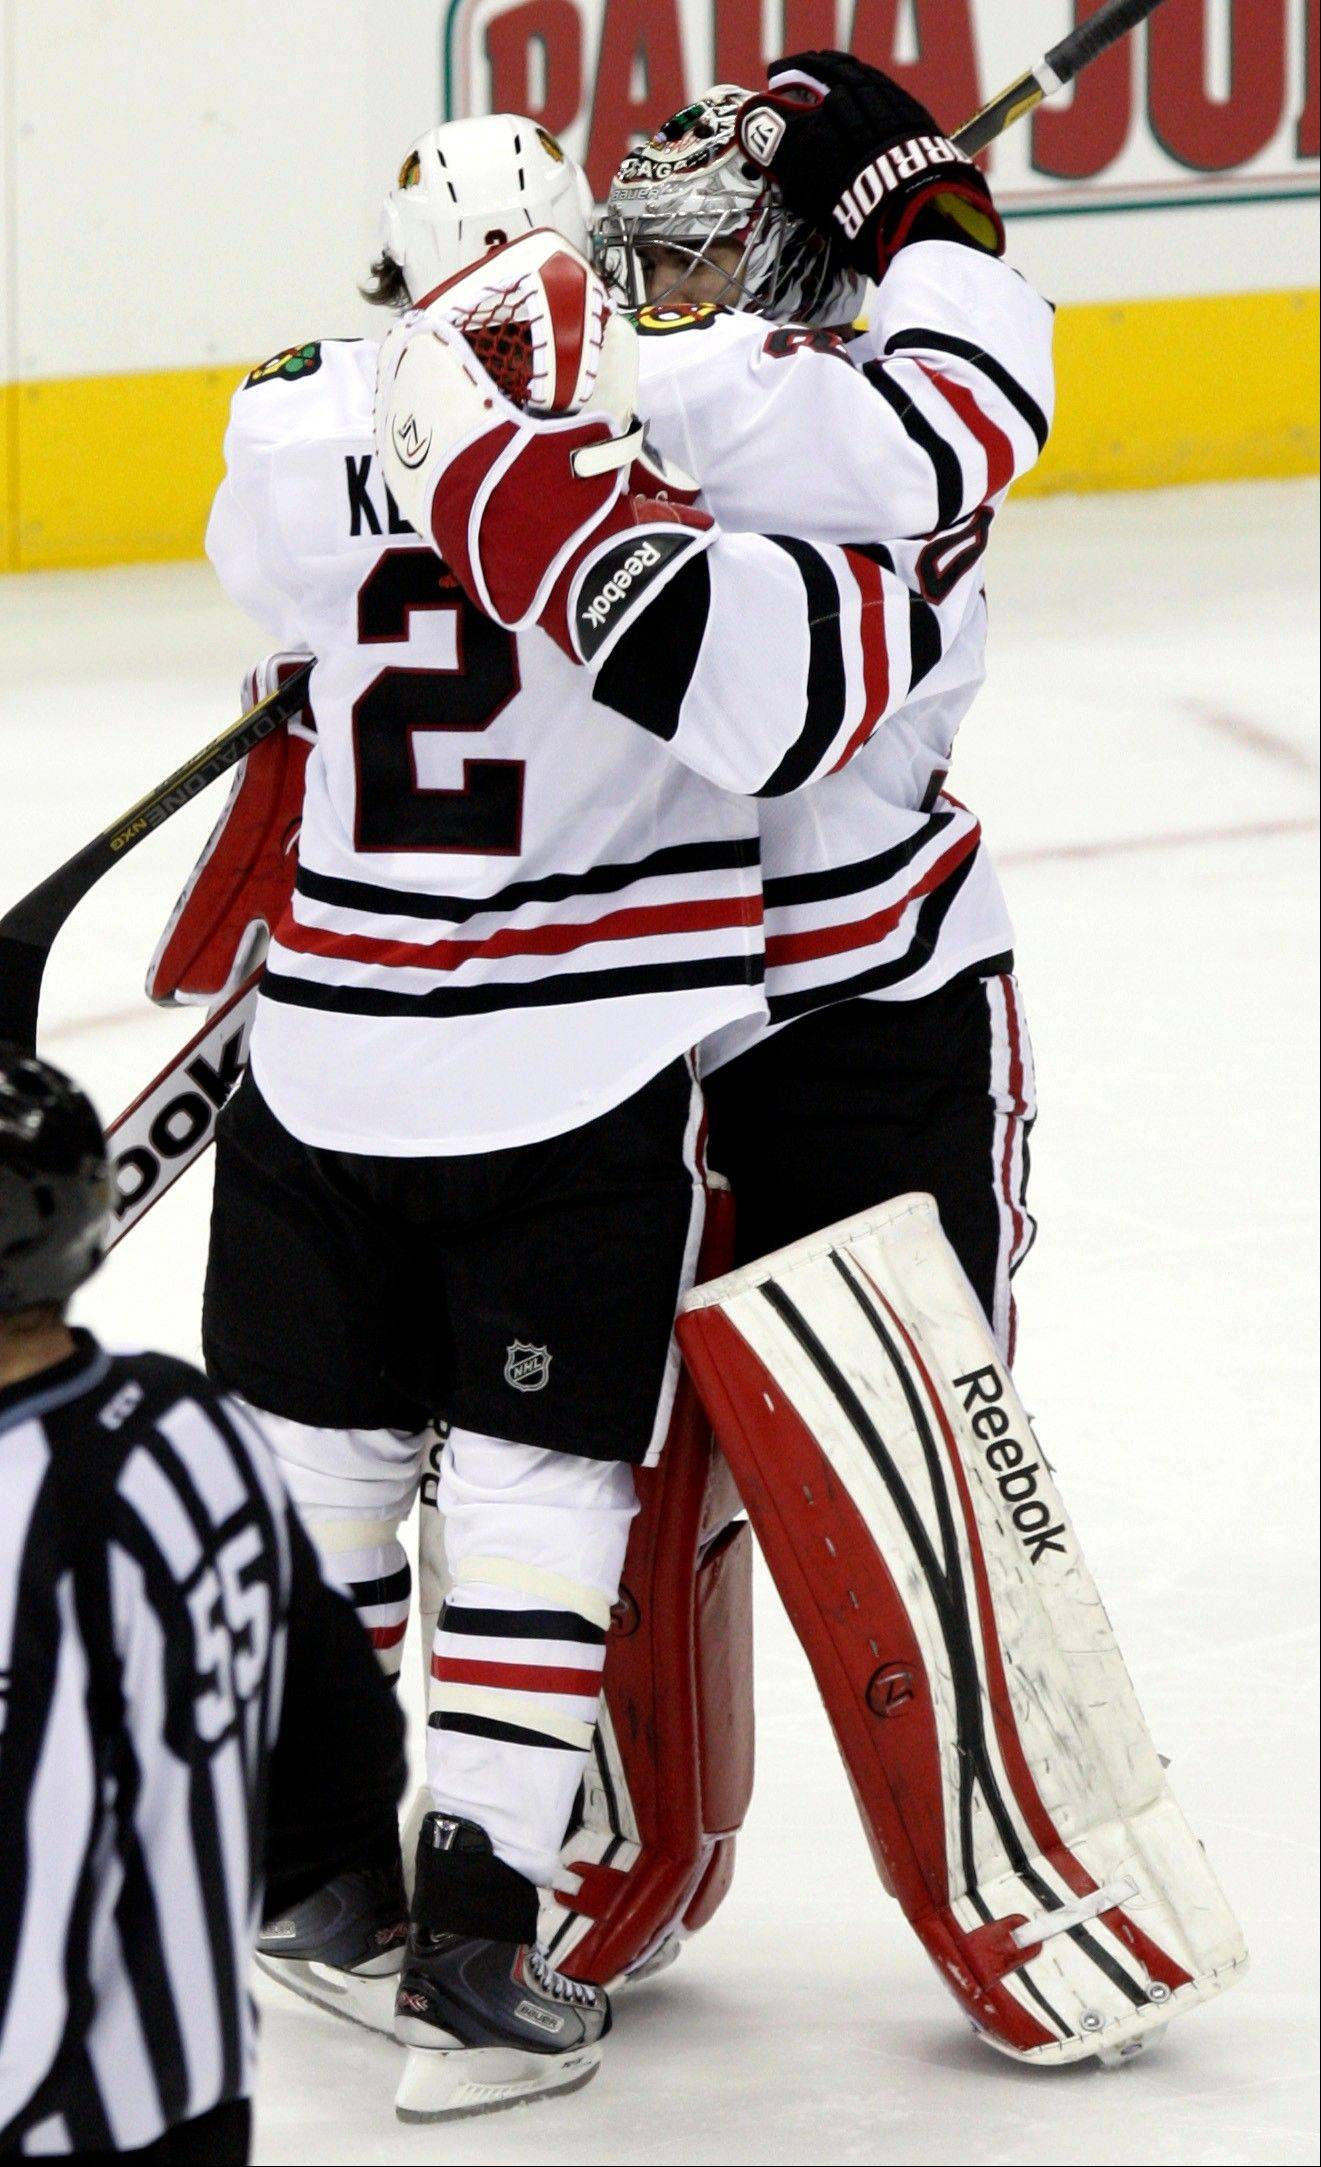 Chicago Blackhawks' Duncan Keith, left, celebrates with goalie Corey Crawford following the Blackhawks' 2-1 win over the Columbus Blue Jackets in a shootout.